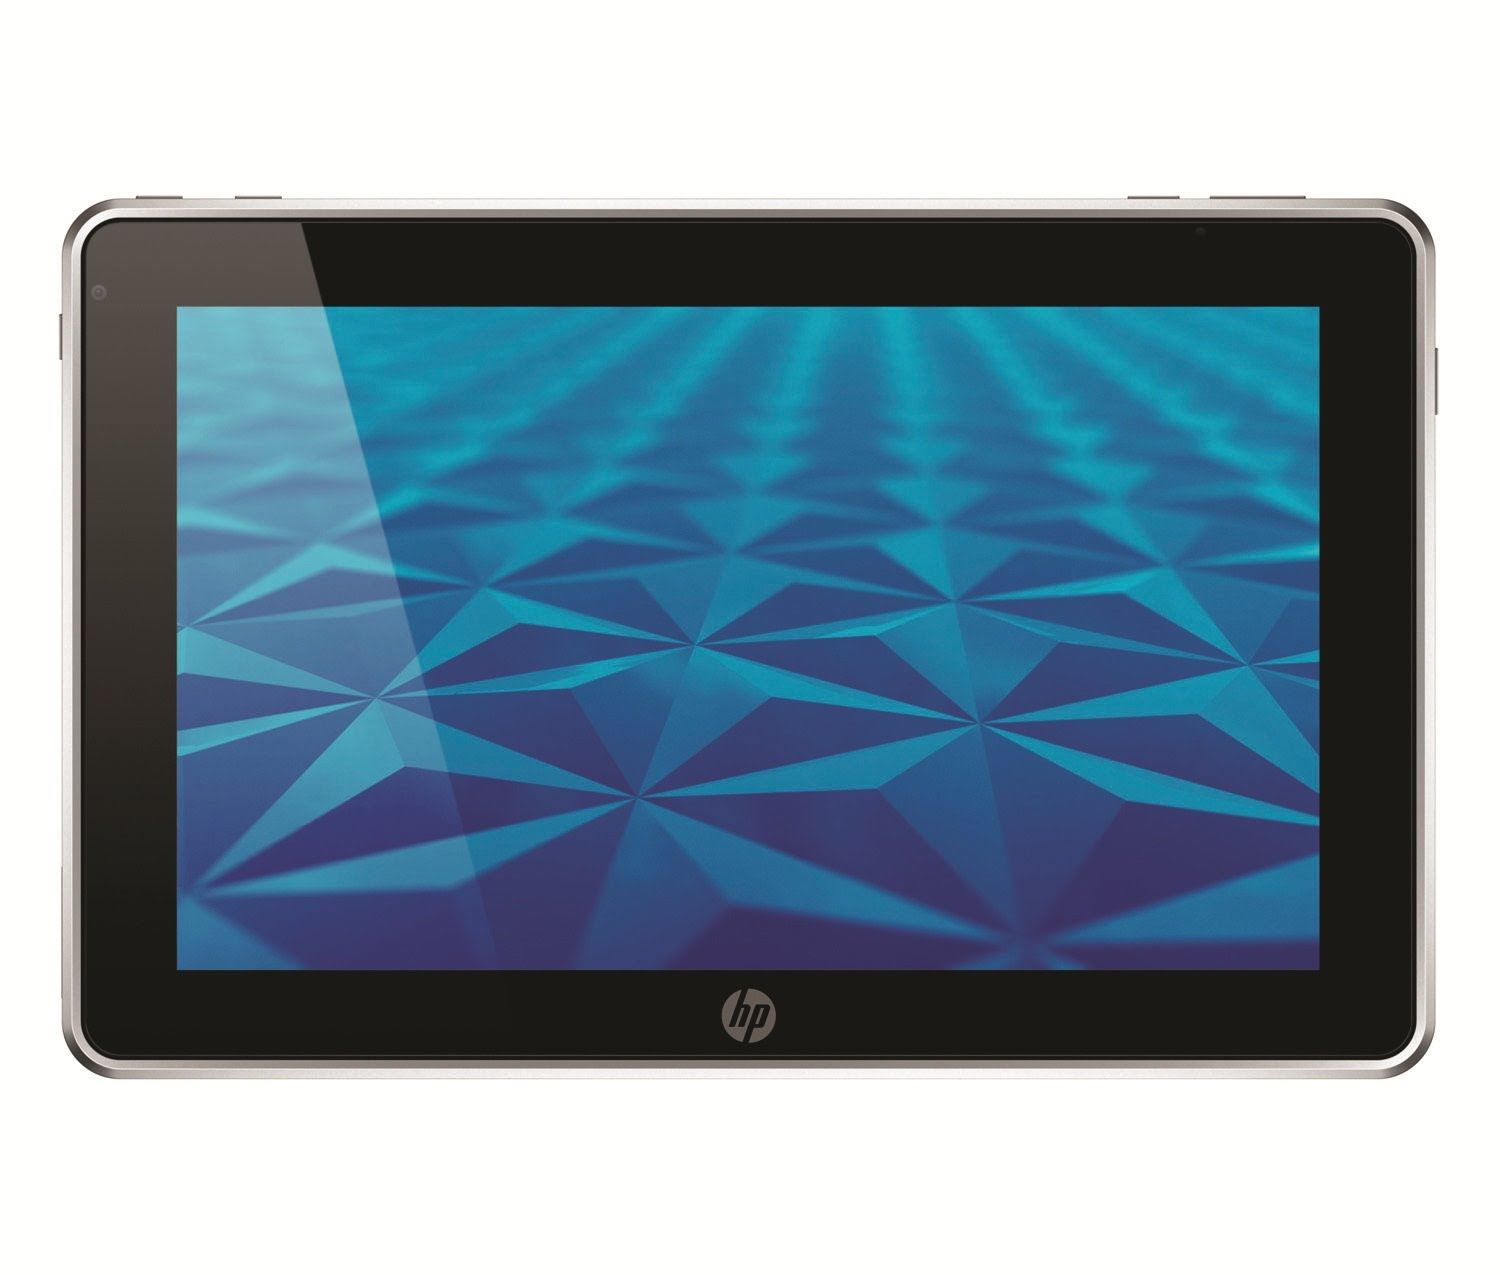 HP officially introduce 500 Slate Tablet PC with an 8.9-inch touch